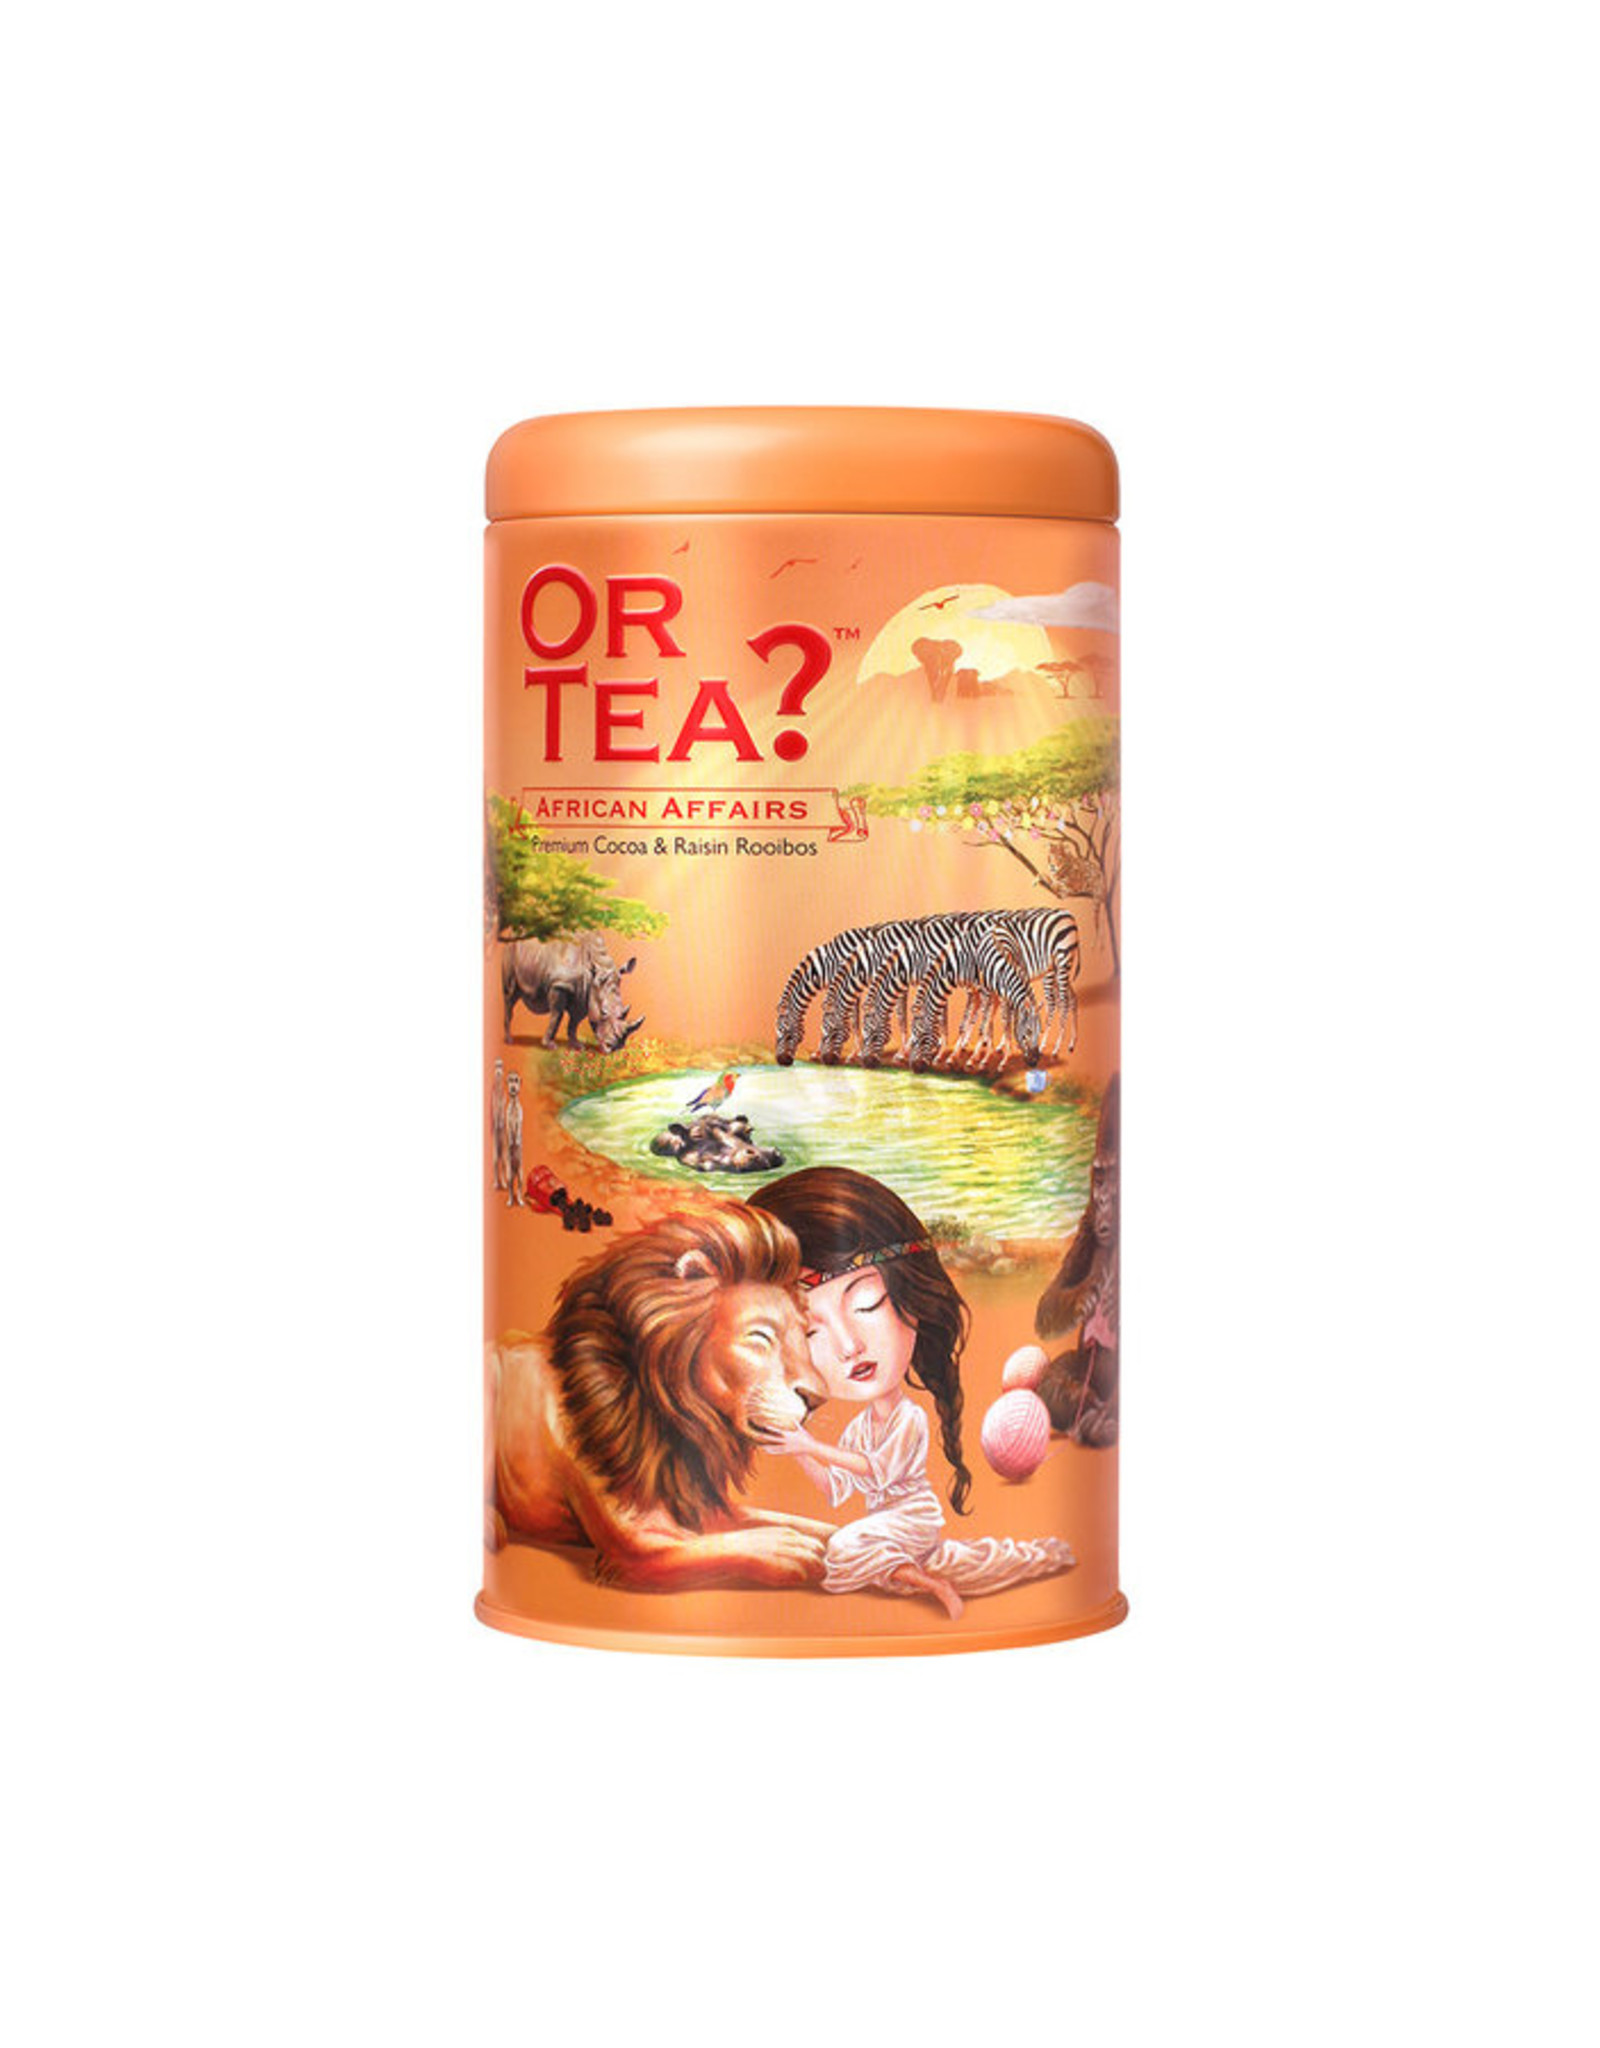 Or Tea? African Affairs - Tin Canister